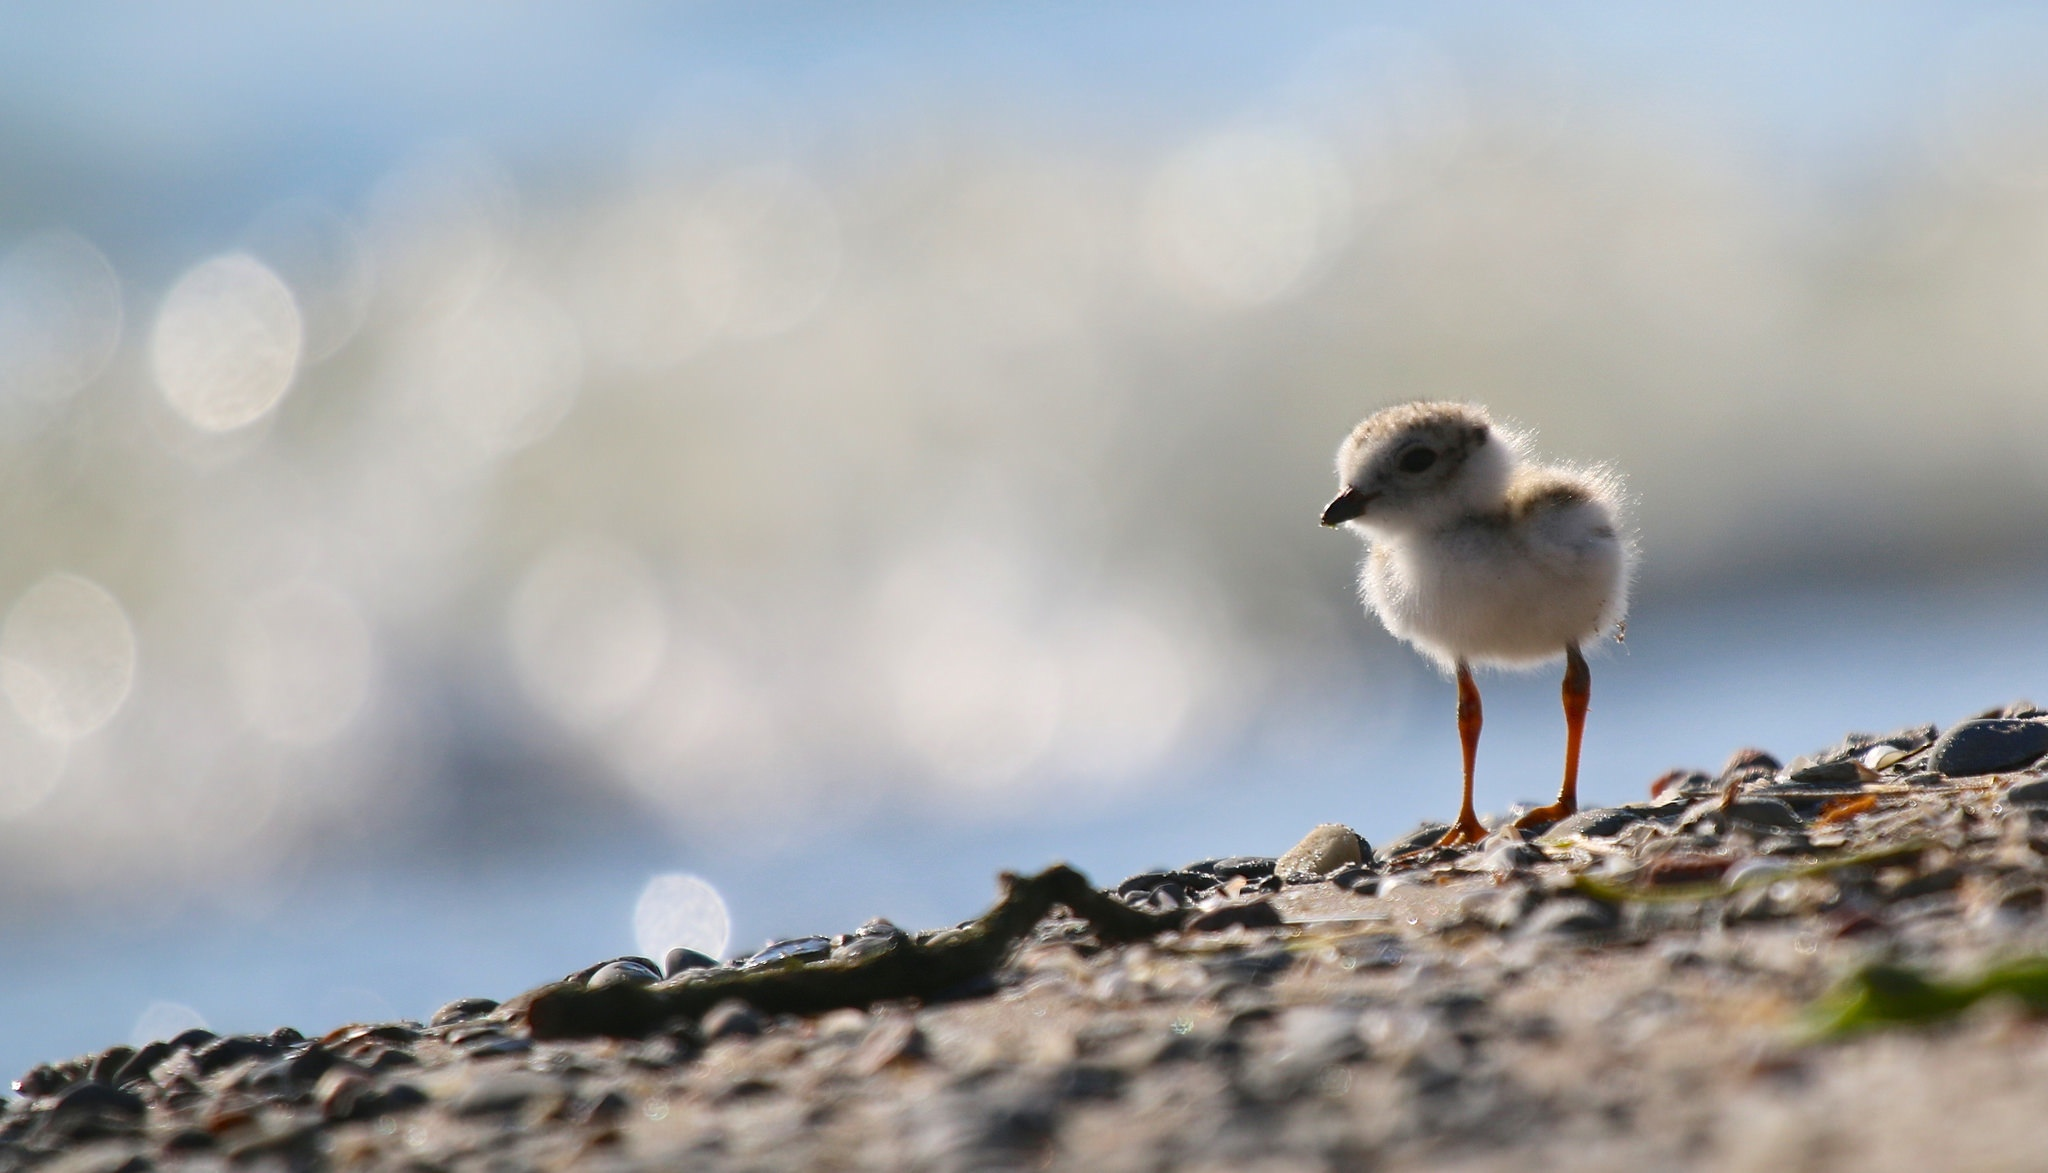 piping plover, lake ontario canada north beach nest chick